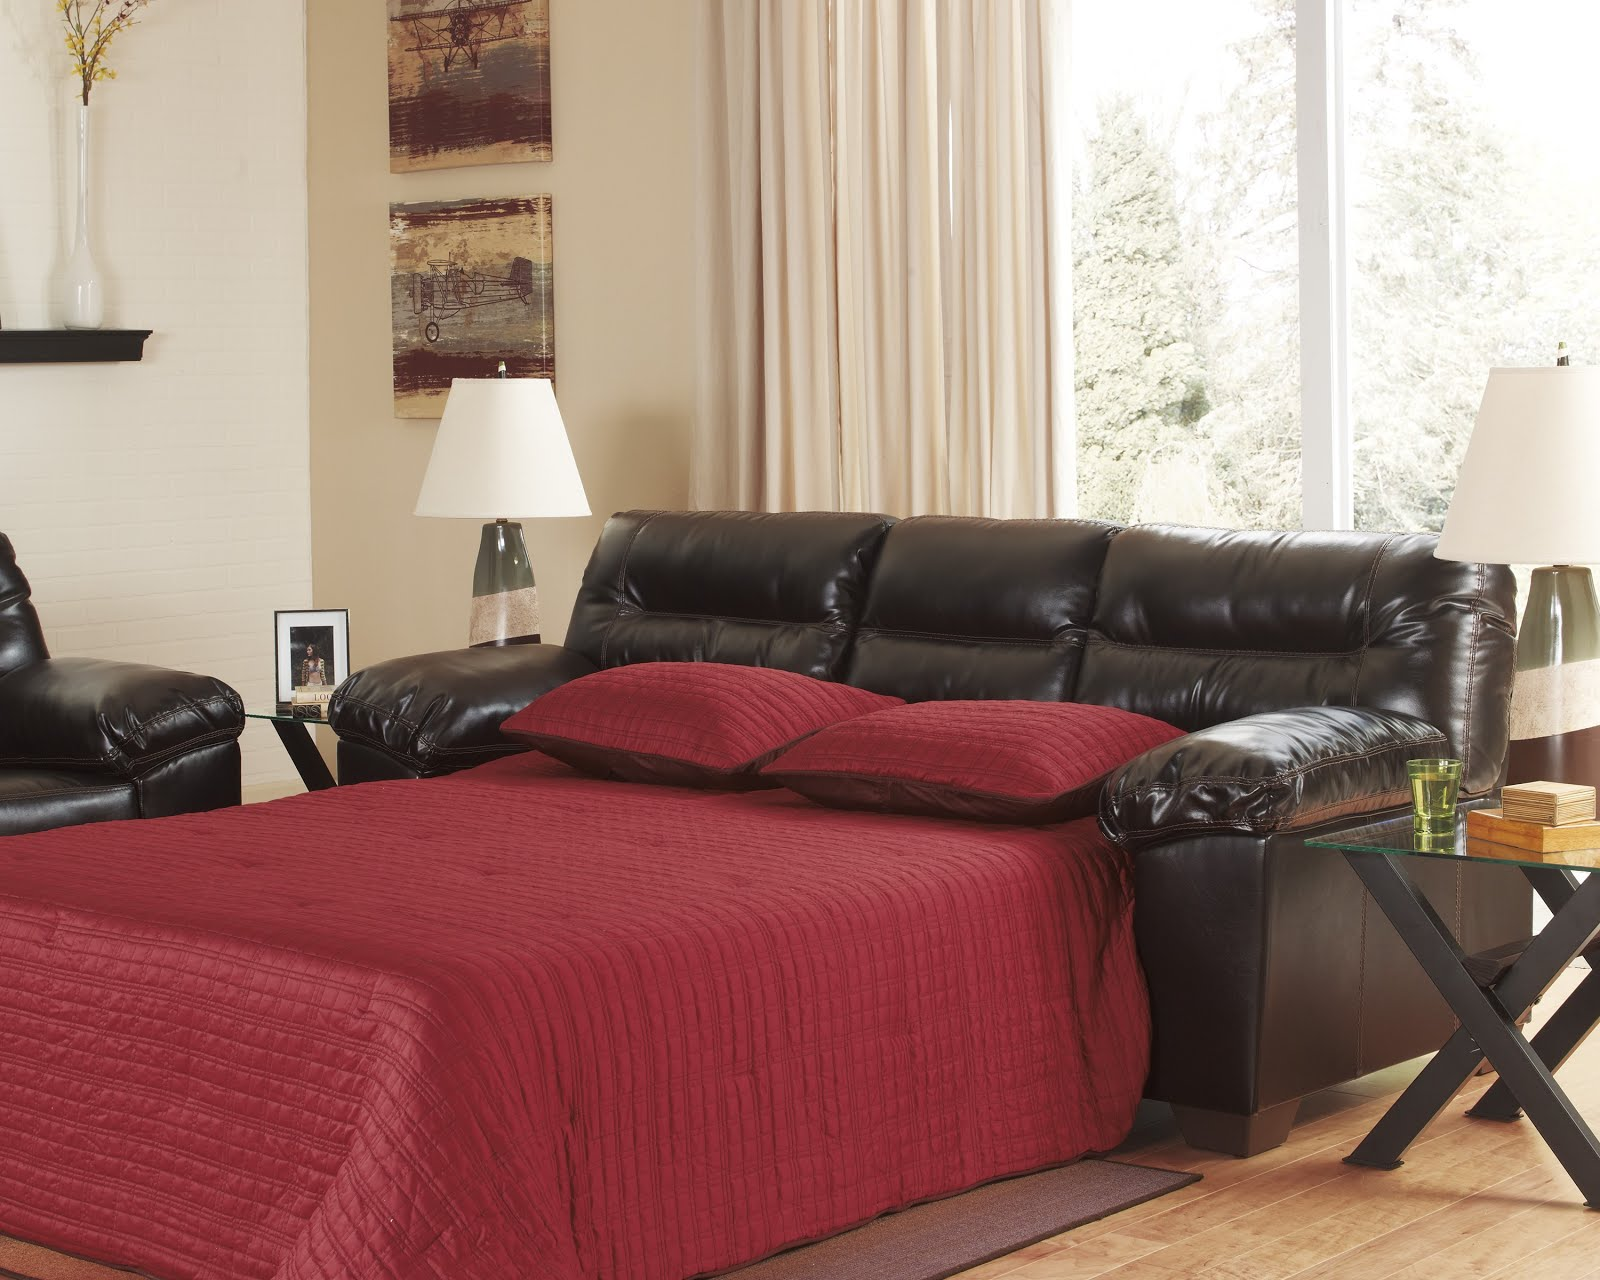 Black Sleeper Sofa Sofa Design Ideas Black Best Sleeper Mattress